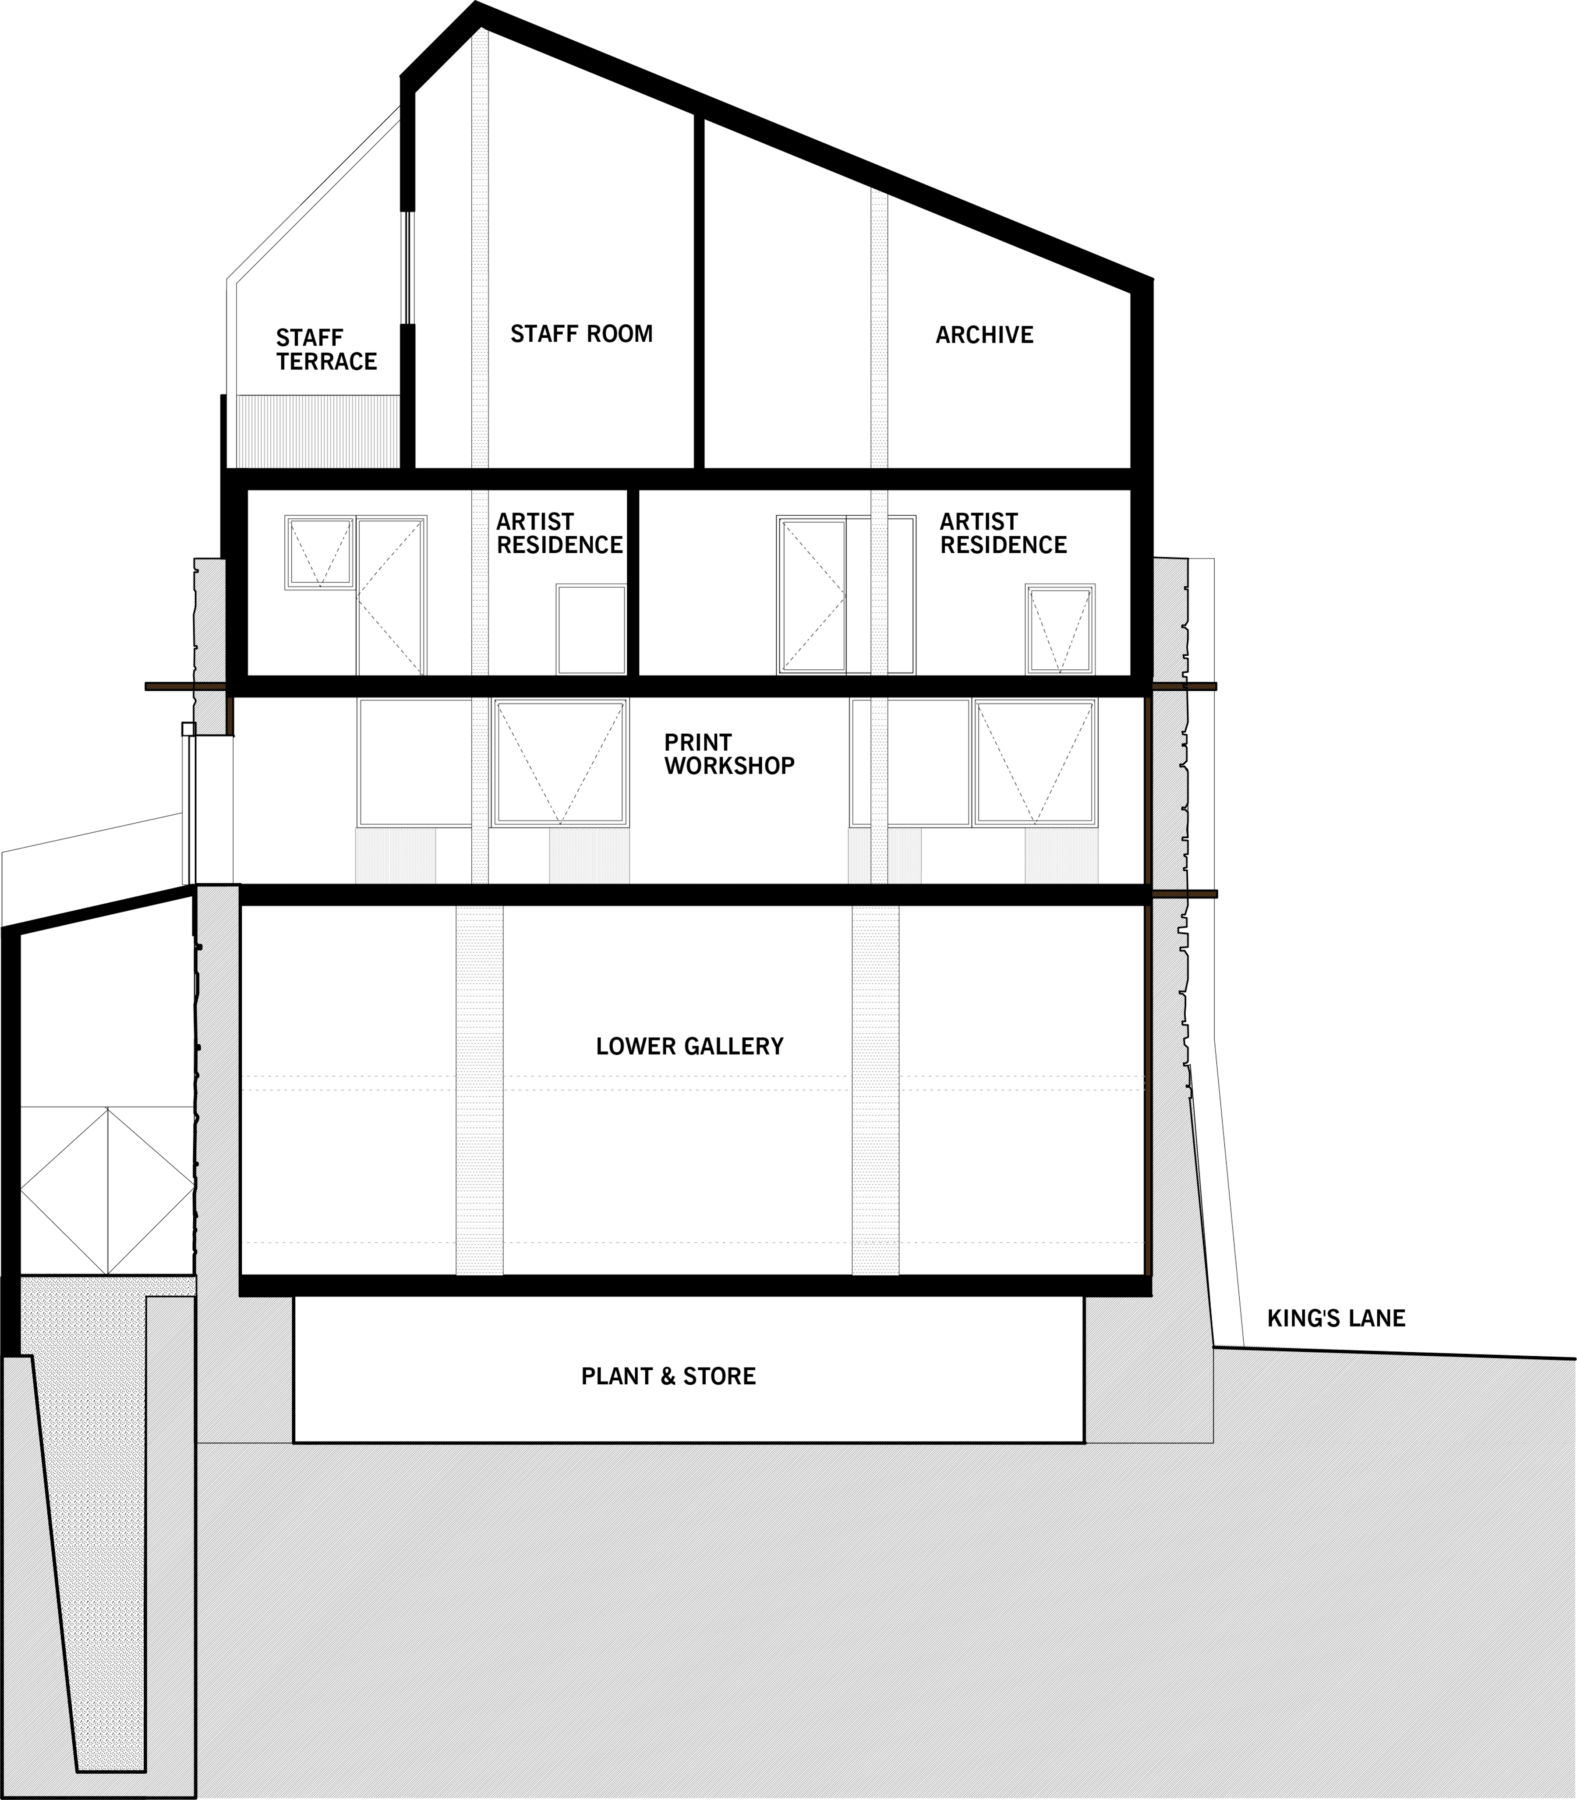 Sarah-Wigglesworth-Architects Swansea-Print-Works Drawing Section 3600